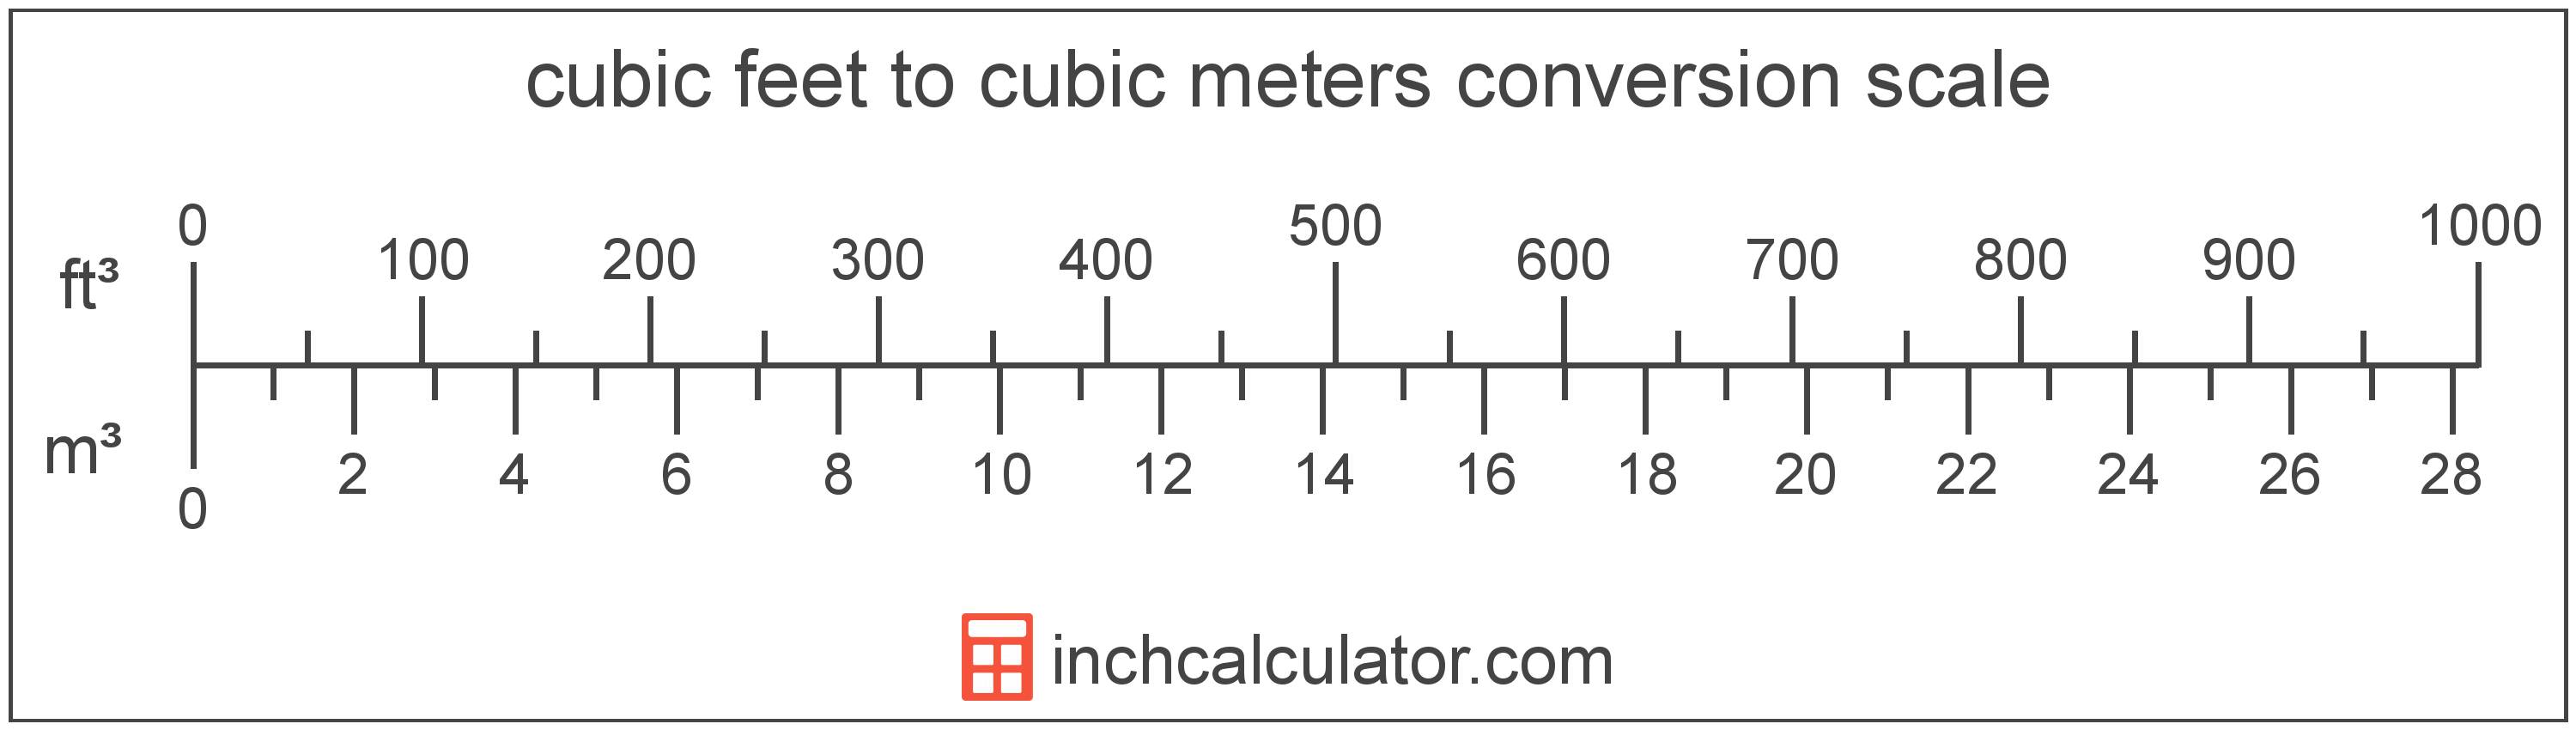 conversion scale showing cubic feet and equivalent cubic meters volume values